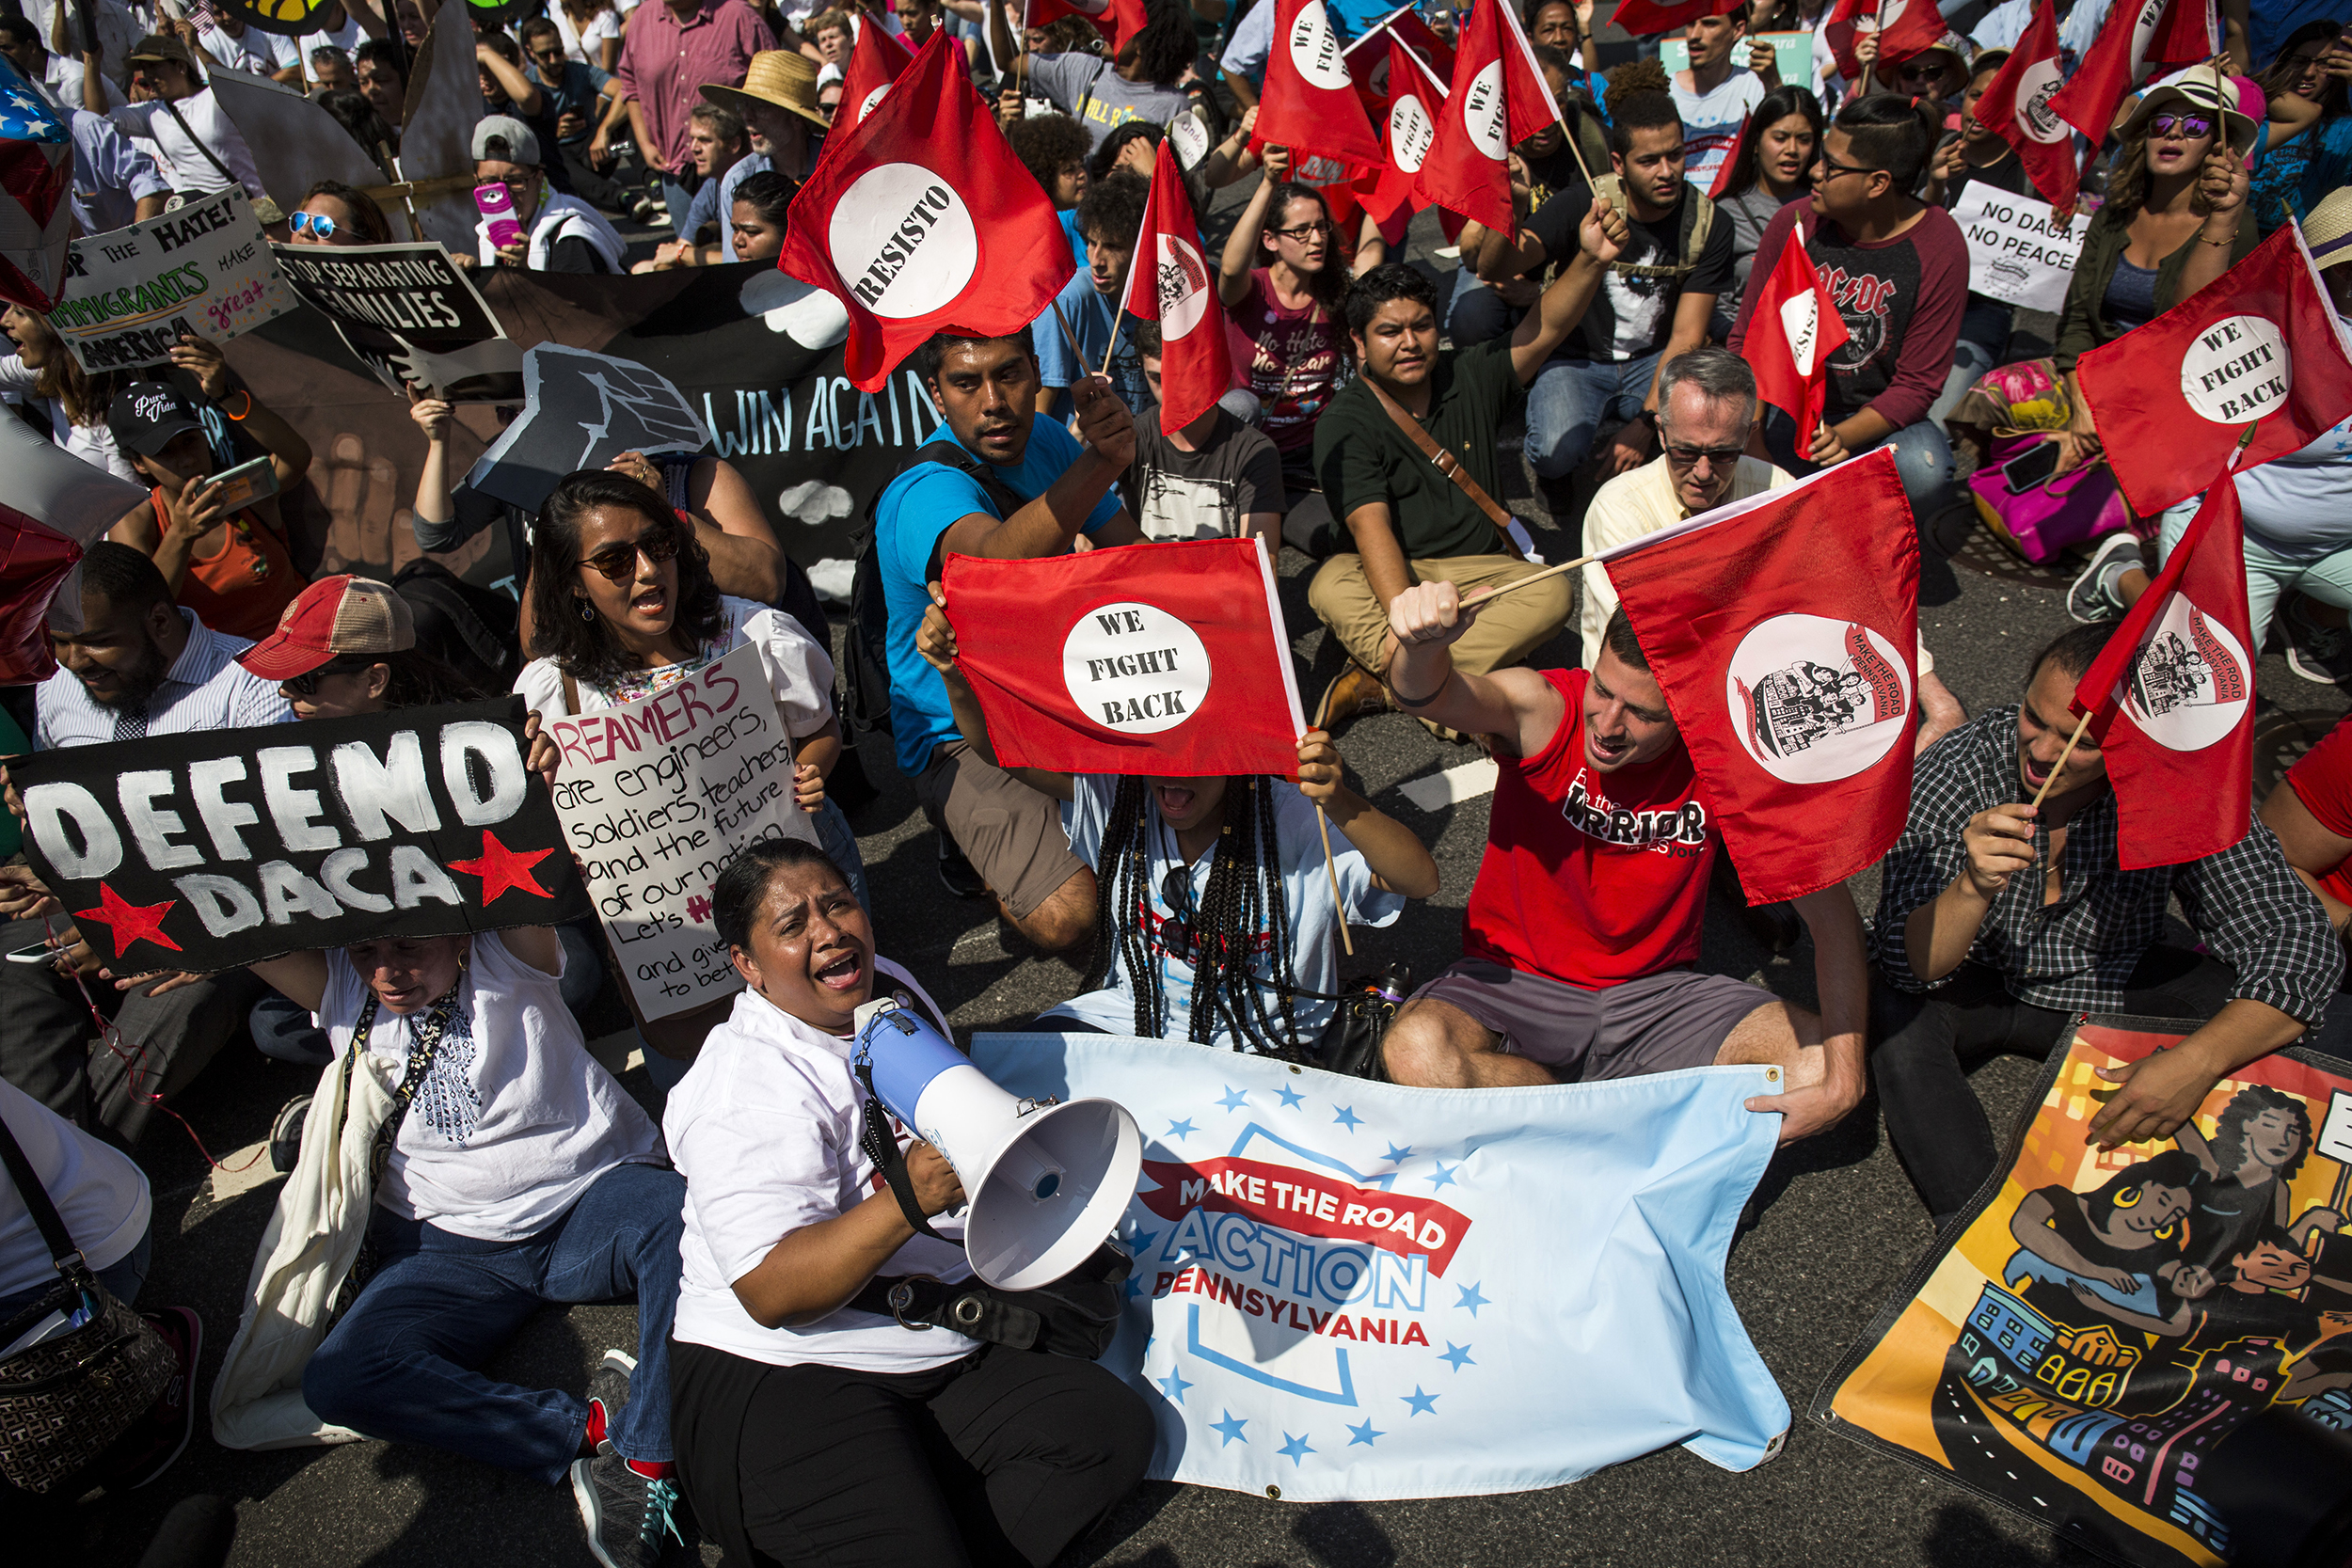 Dreamers on verge of getting DACA are left hanging after latest court ruling